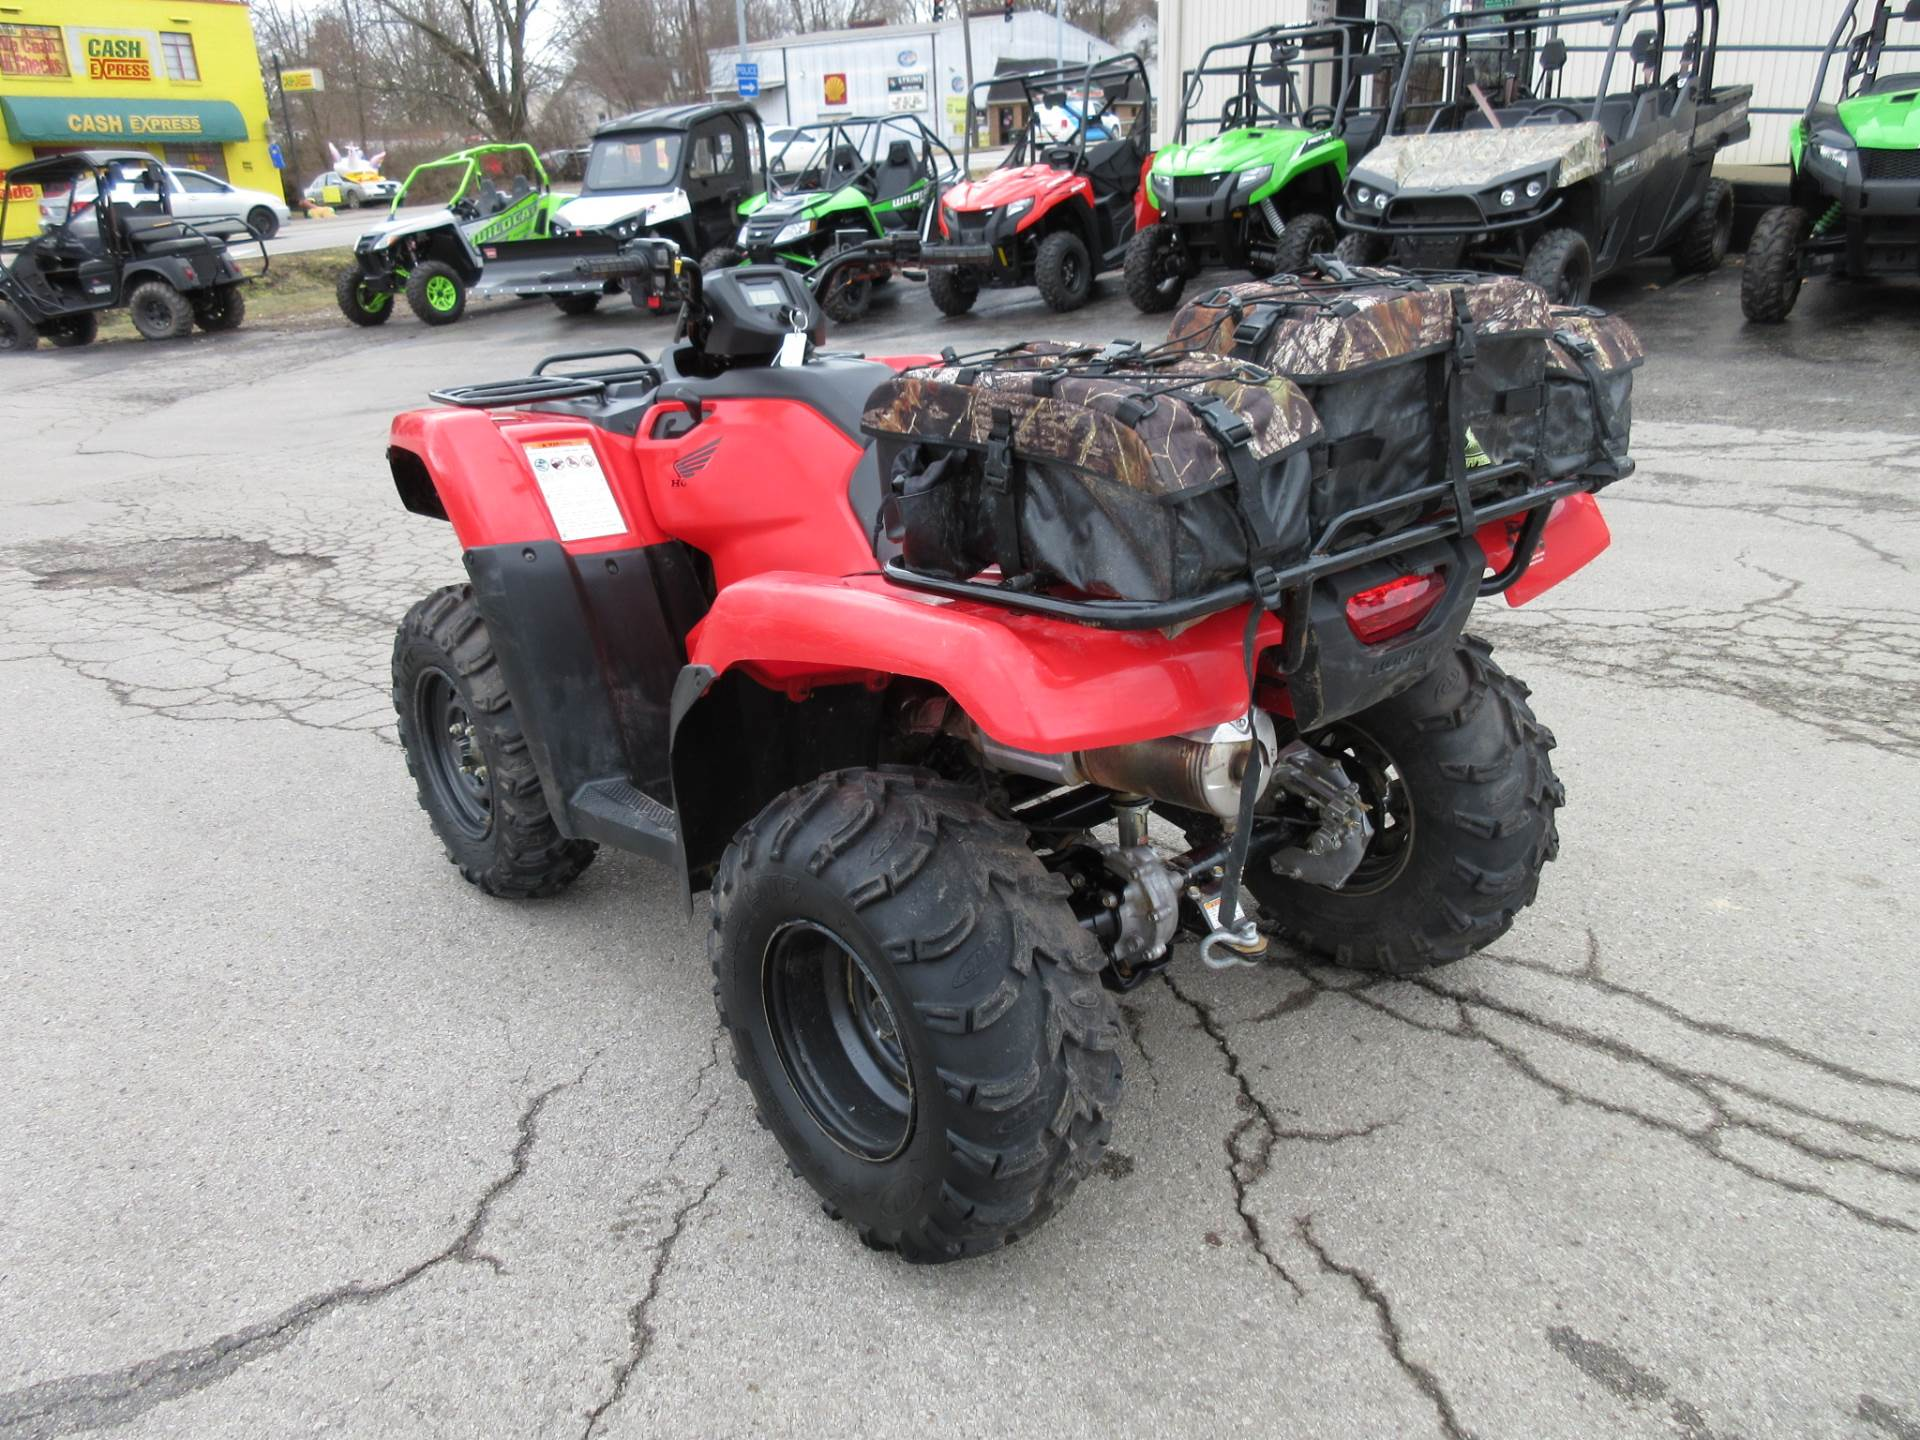 2015 honda rancher 420 4x4 electric shift w winch storage bag used honda rancher 4x4 es for. Black Bedroom Furniture Sets. Home Design Ideas